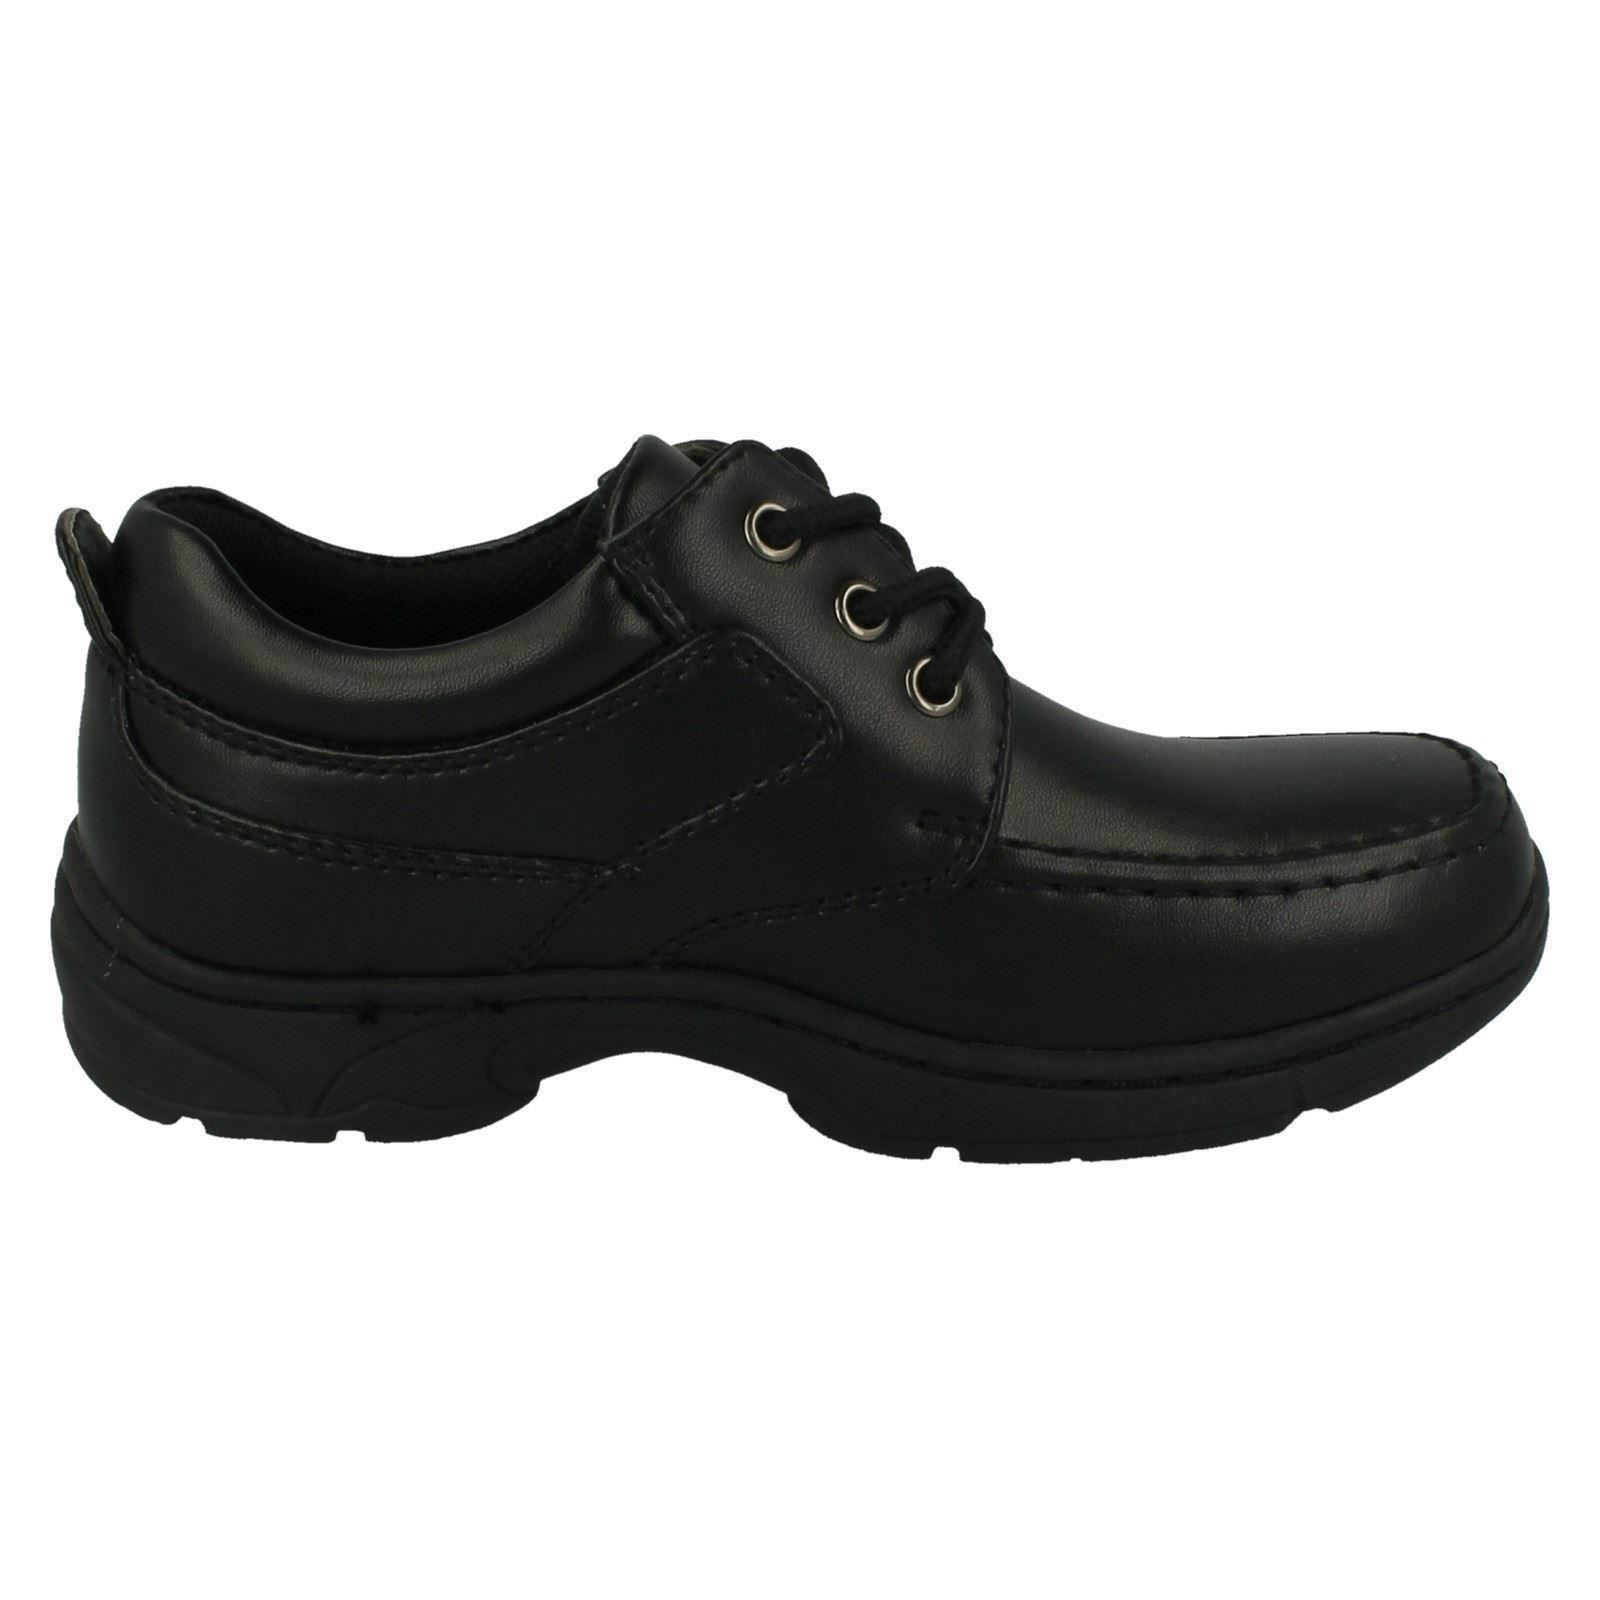 Boys Cool For School Lace Up School Shoes